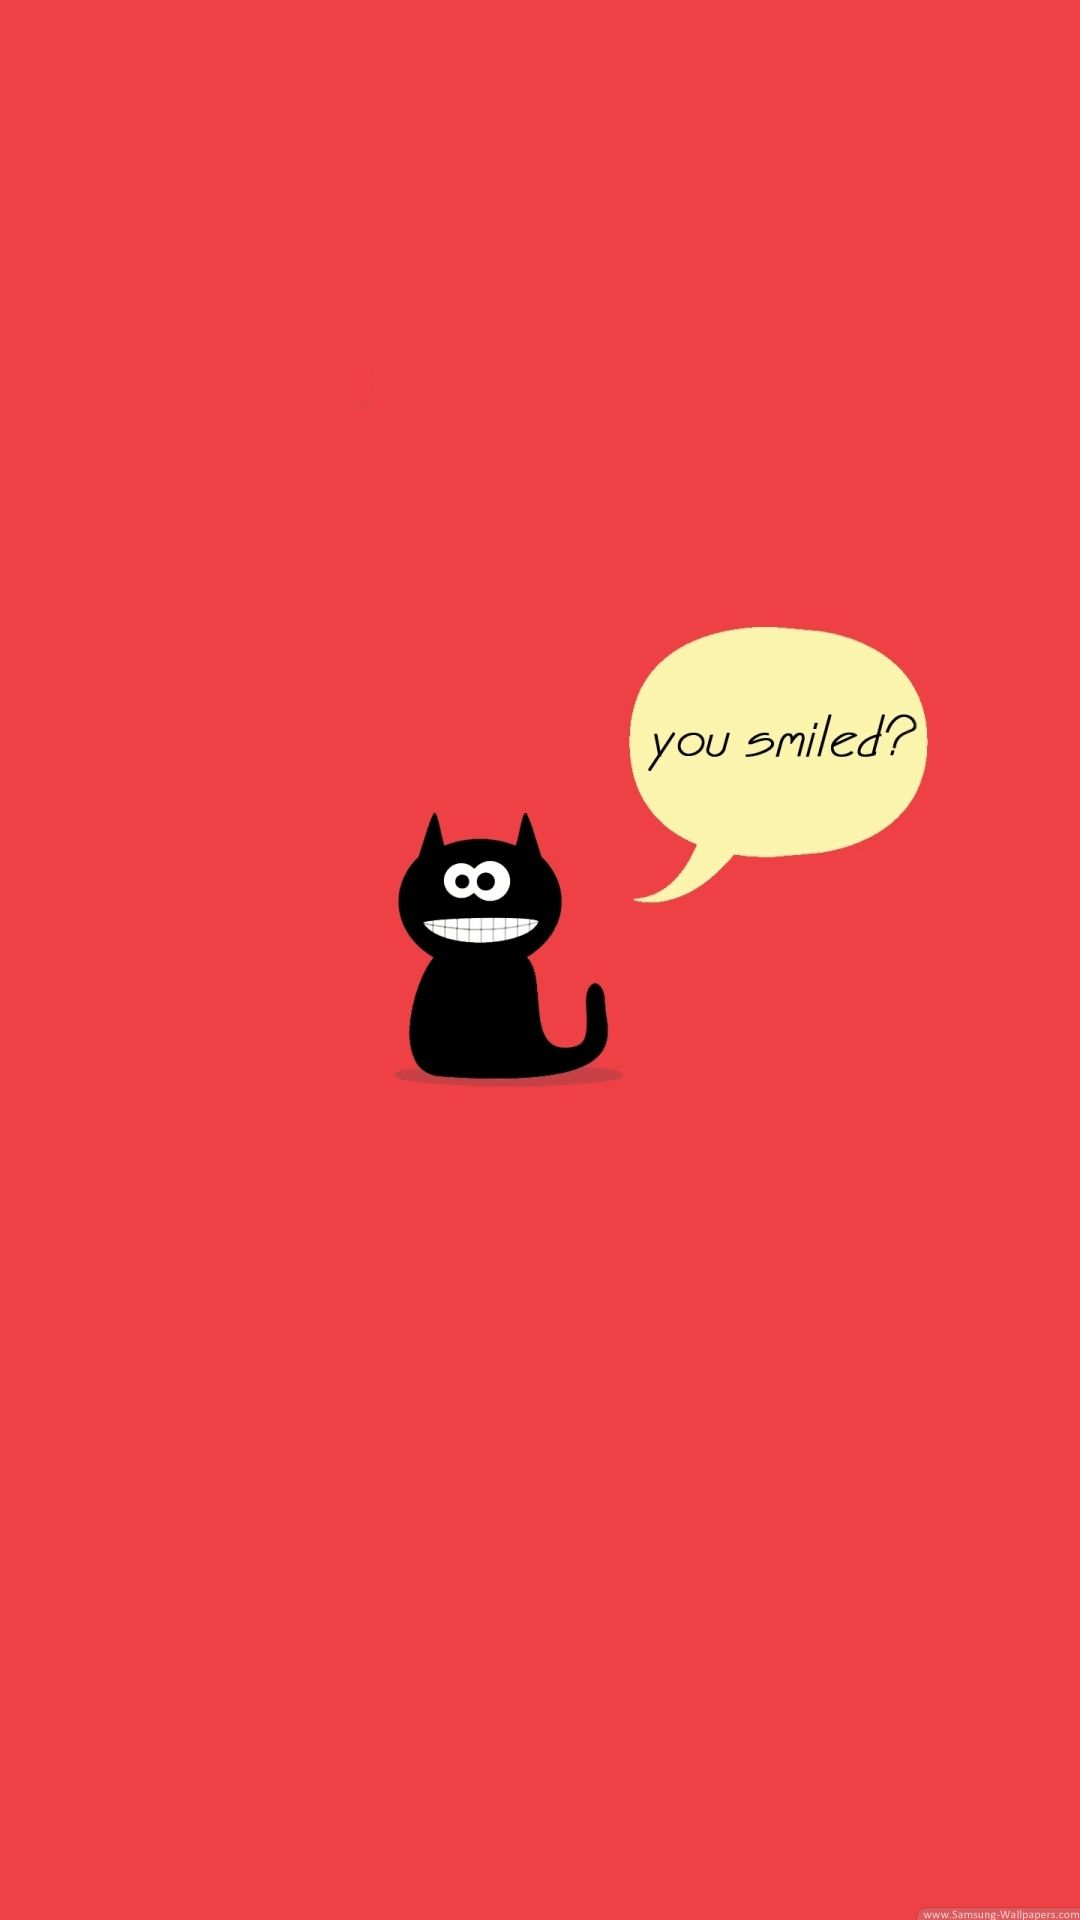 TAP AND GET THE FREE APP! Fun You Smiled Red Cute Black